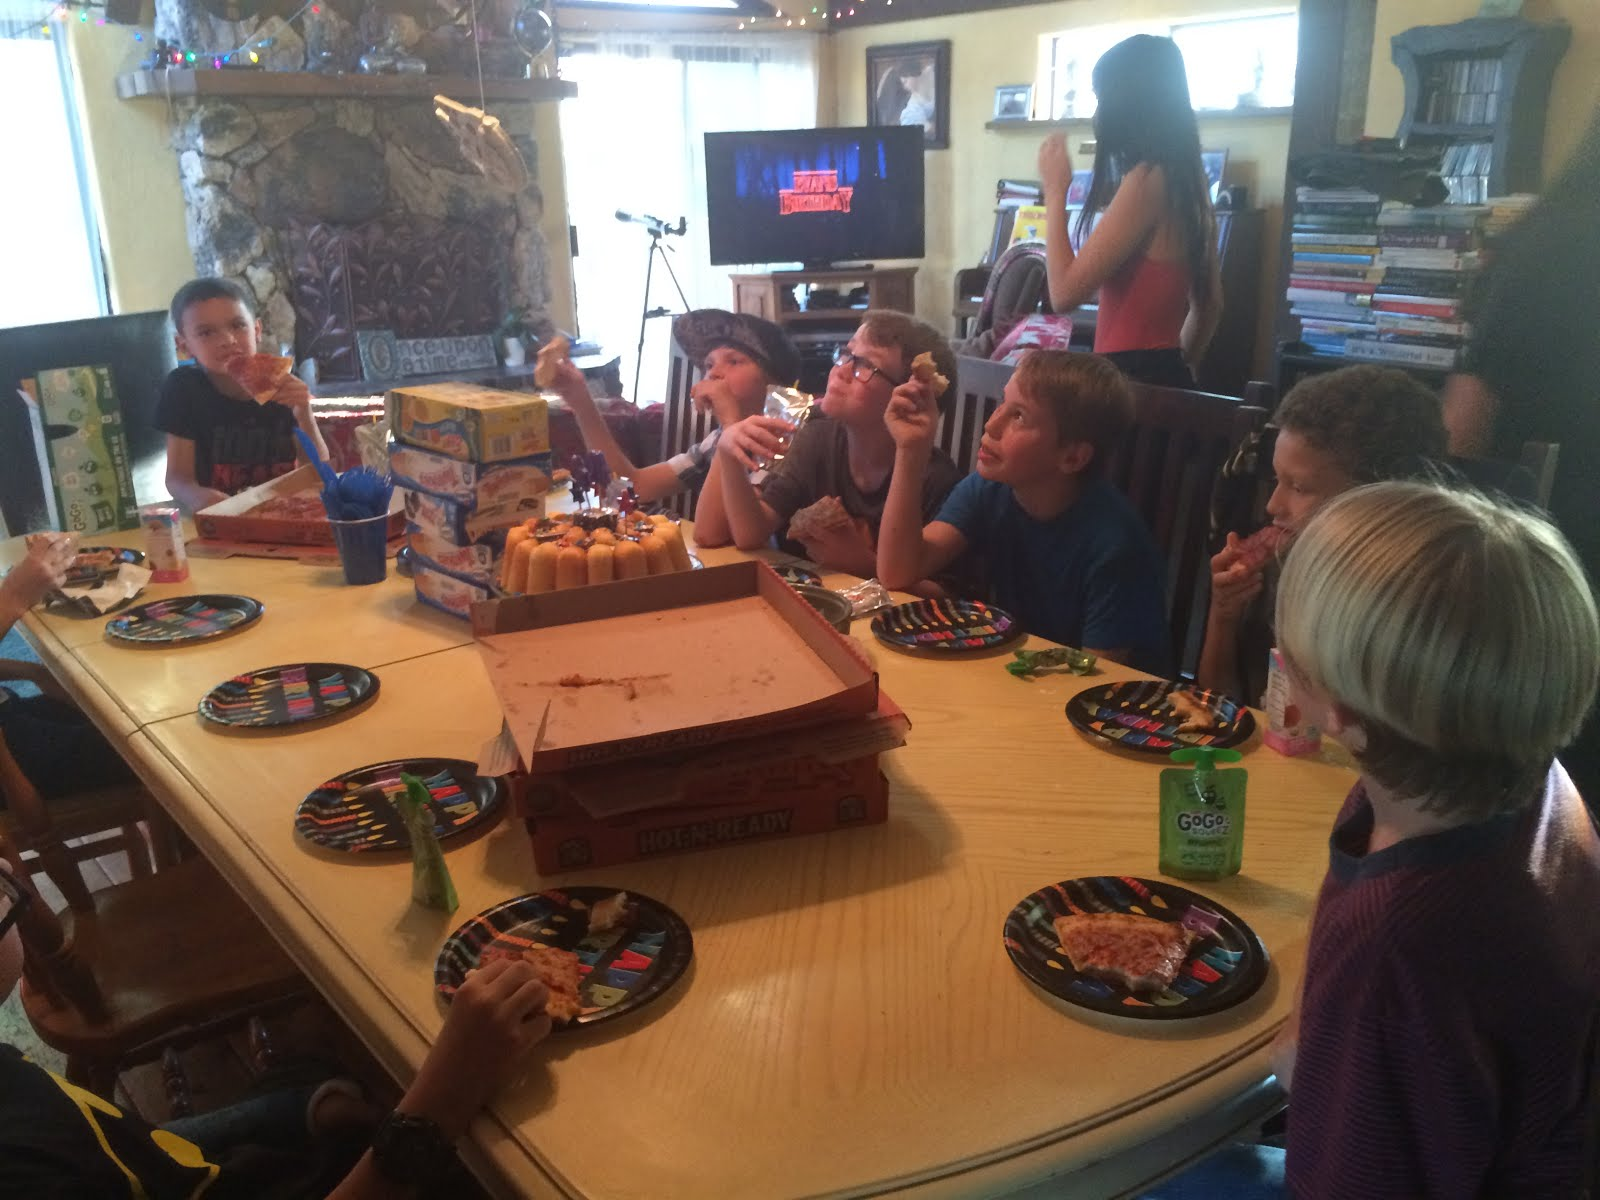 HOLLYE DEXTER: We Gave Our Son a Stranger Things Birthday ...